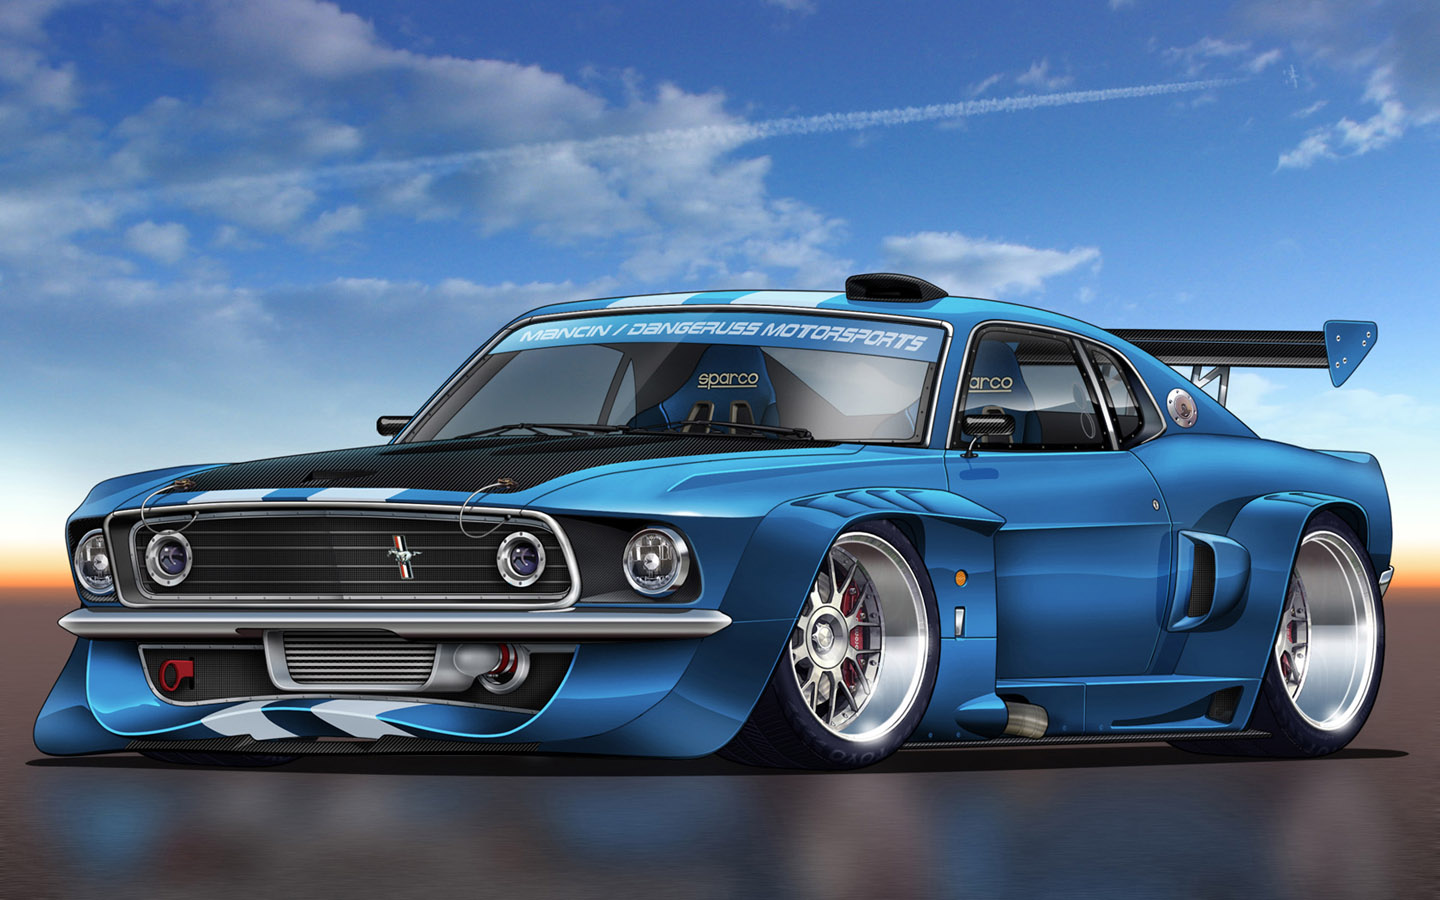 hd muscle car wallpapers Walldesk Chivat 1440x900